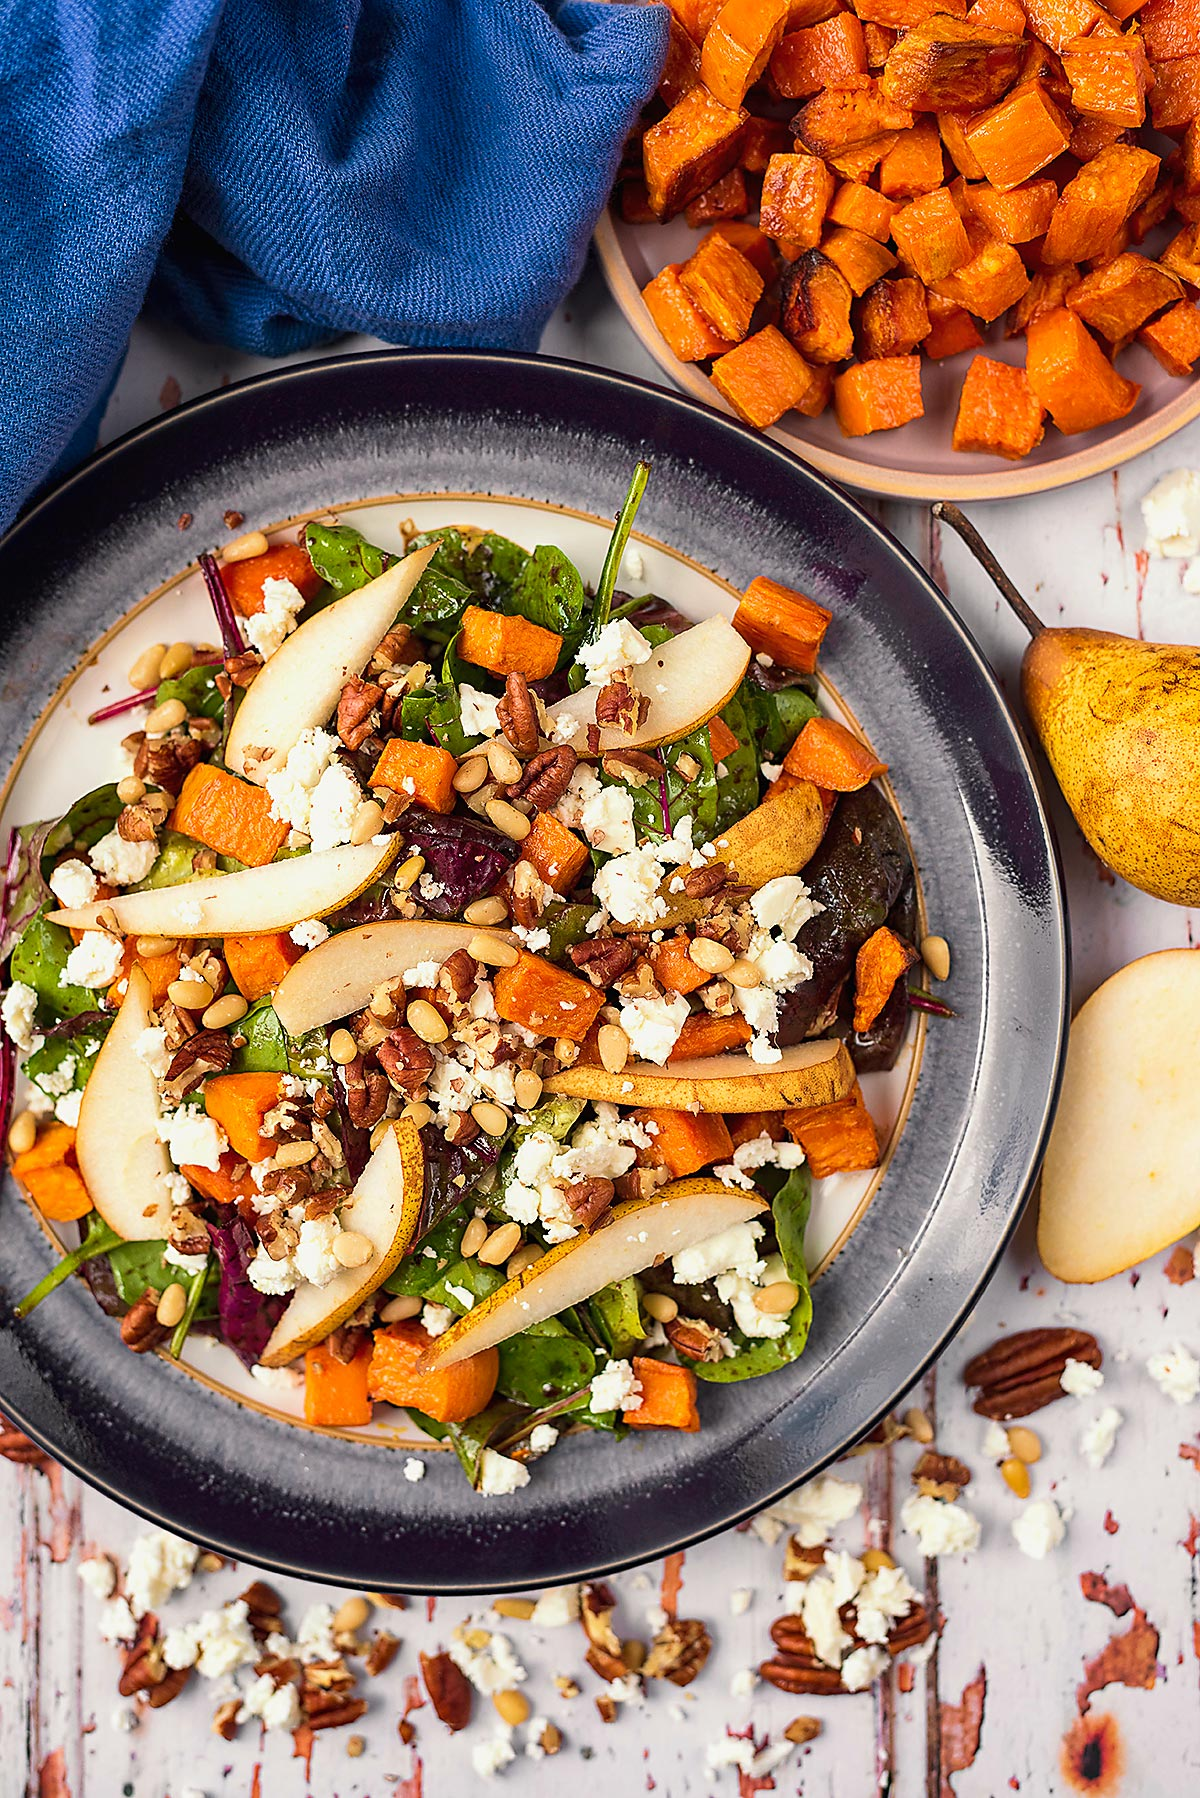 A plate of pear salad next to a bowl of roasted sweet potato cubes